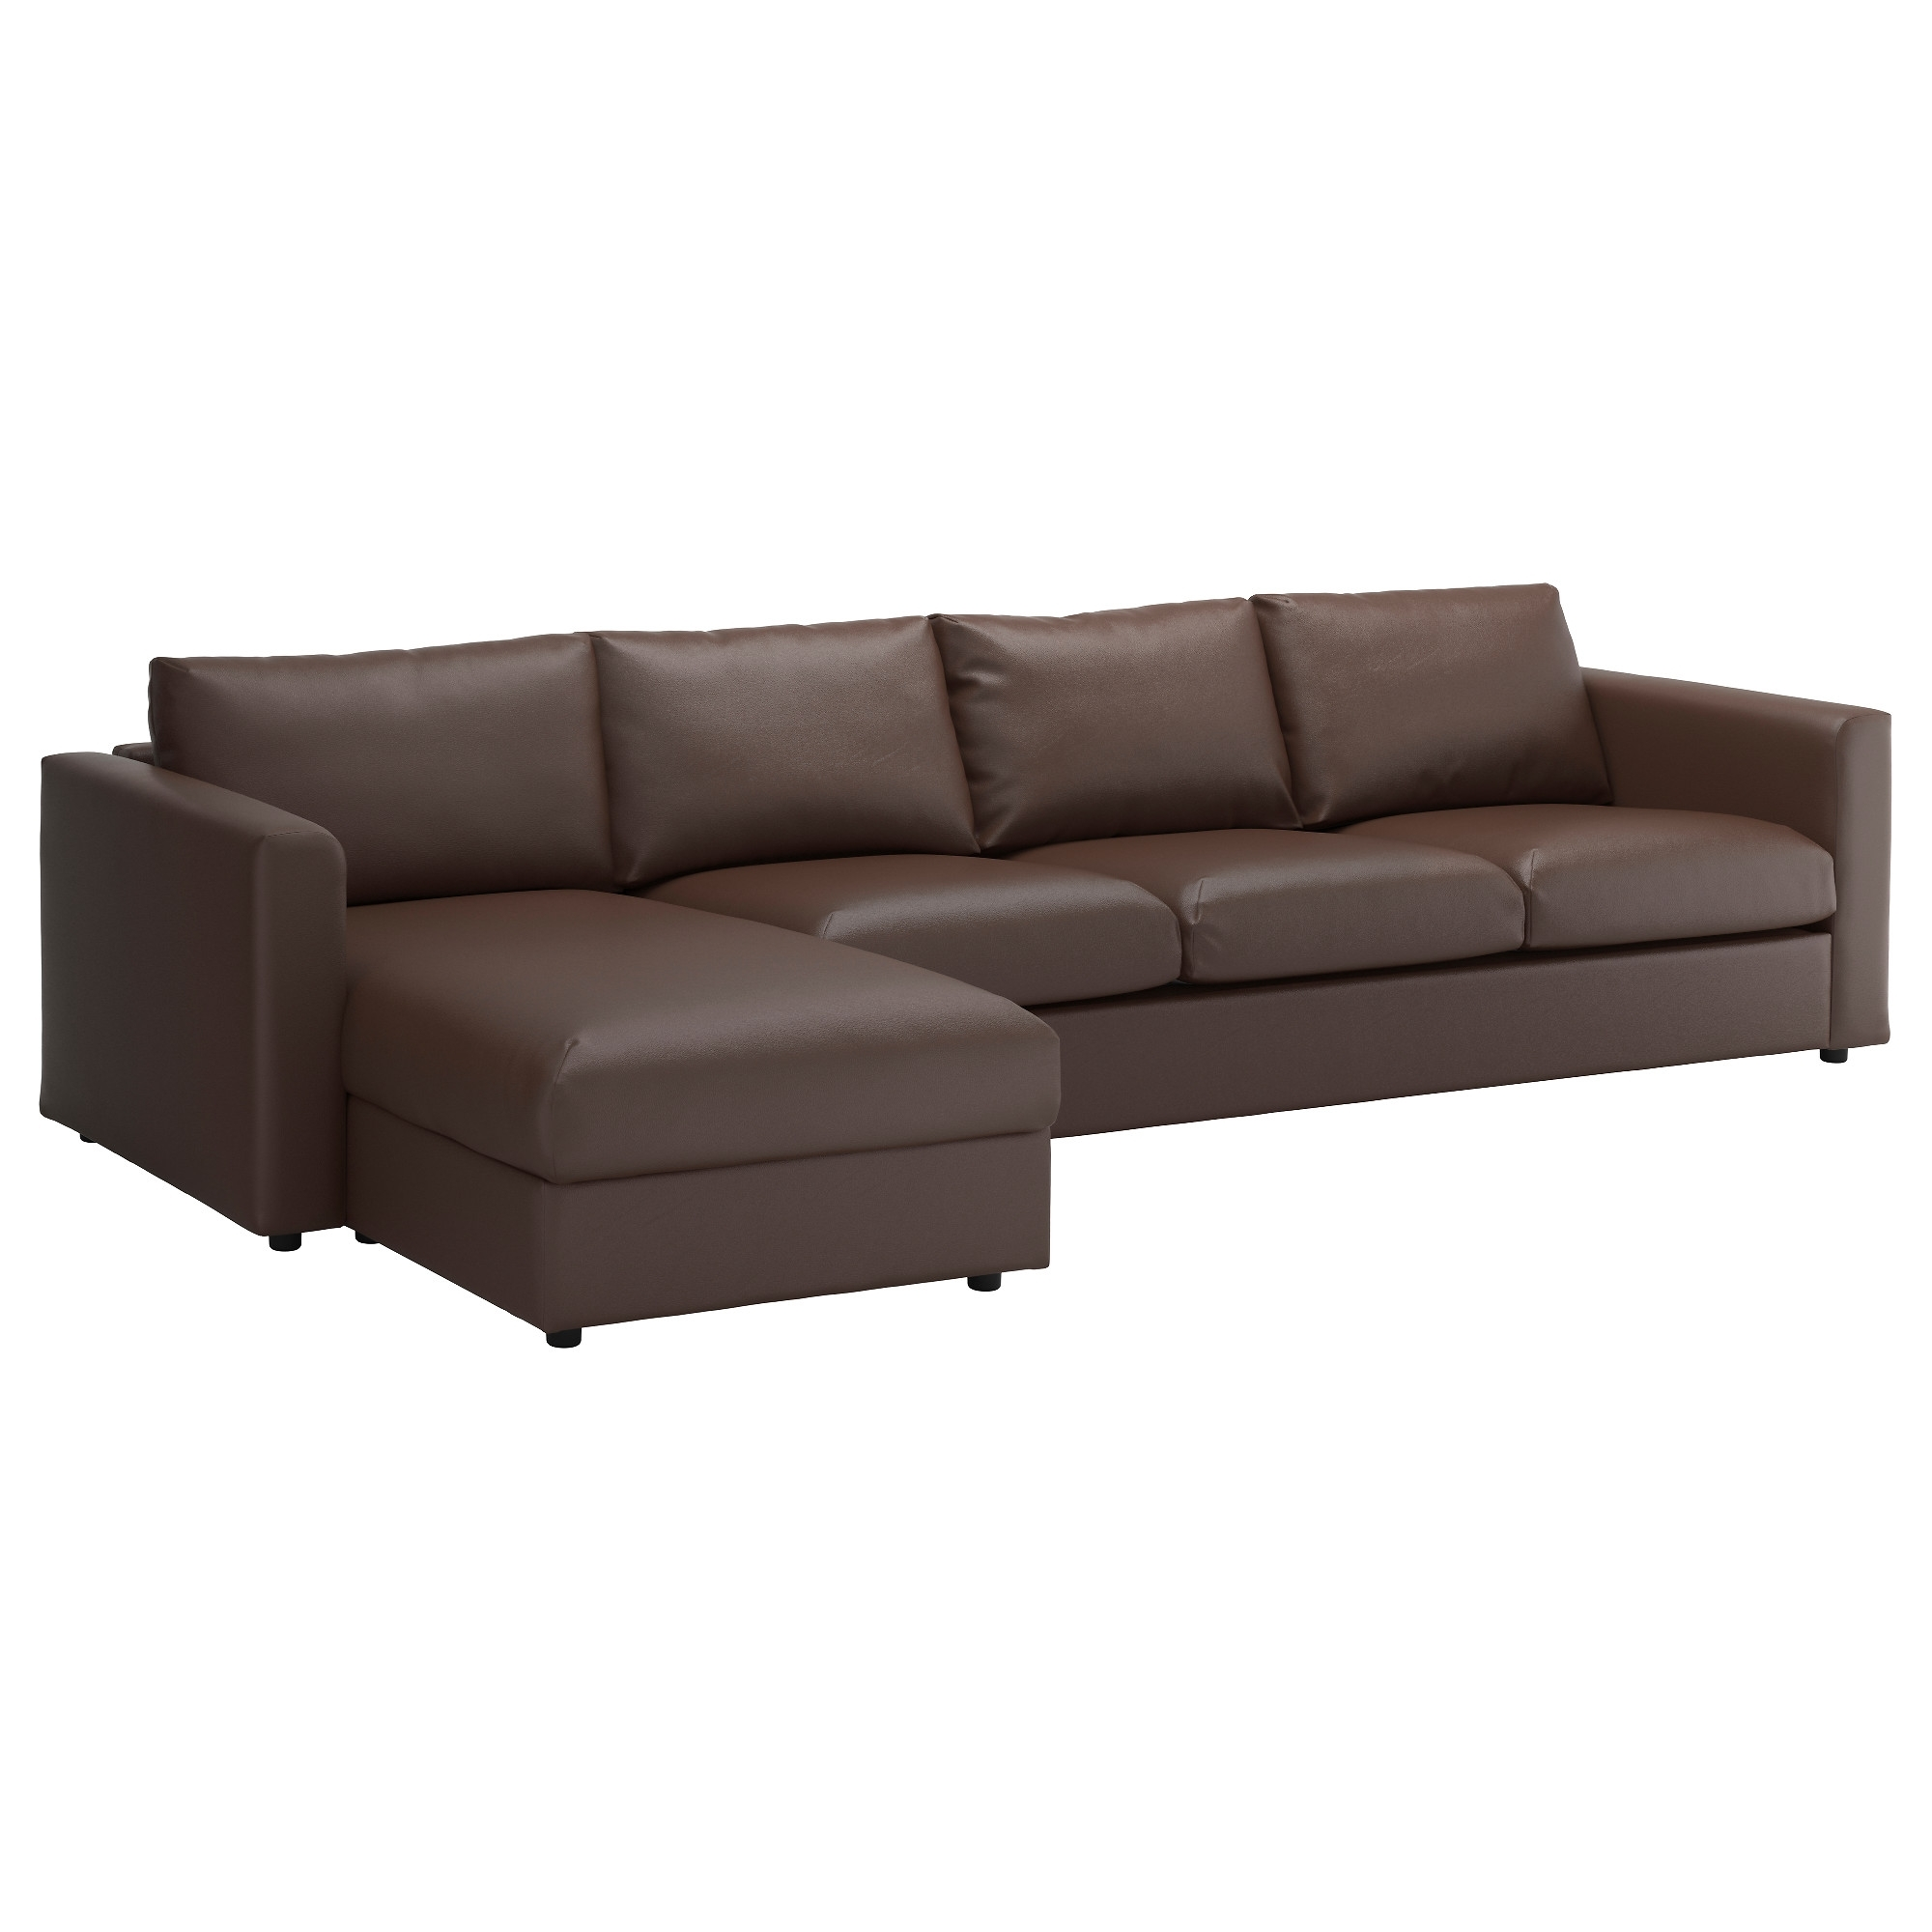 4 Seat Leather Sofas In Trendy Vimle Sectional, 4 Seat – With Chaise/farsta Black – Ikea (View 3 of 20)